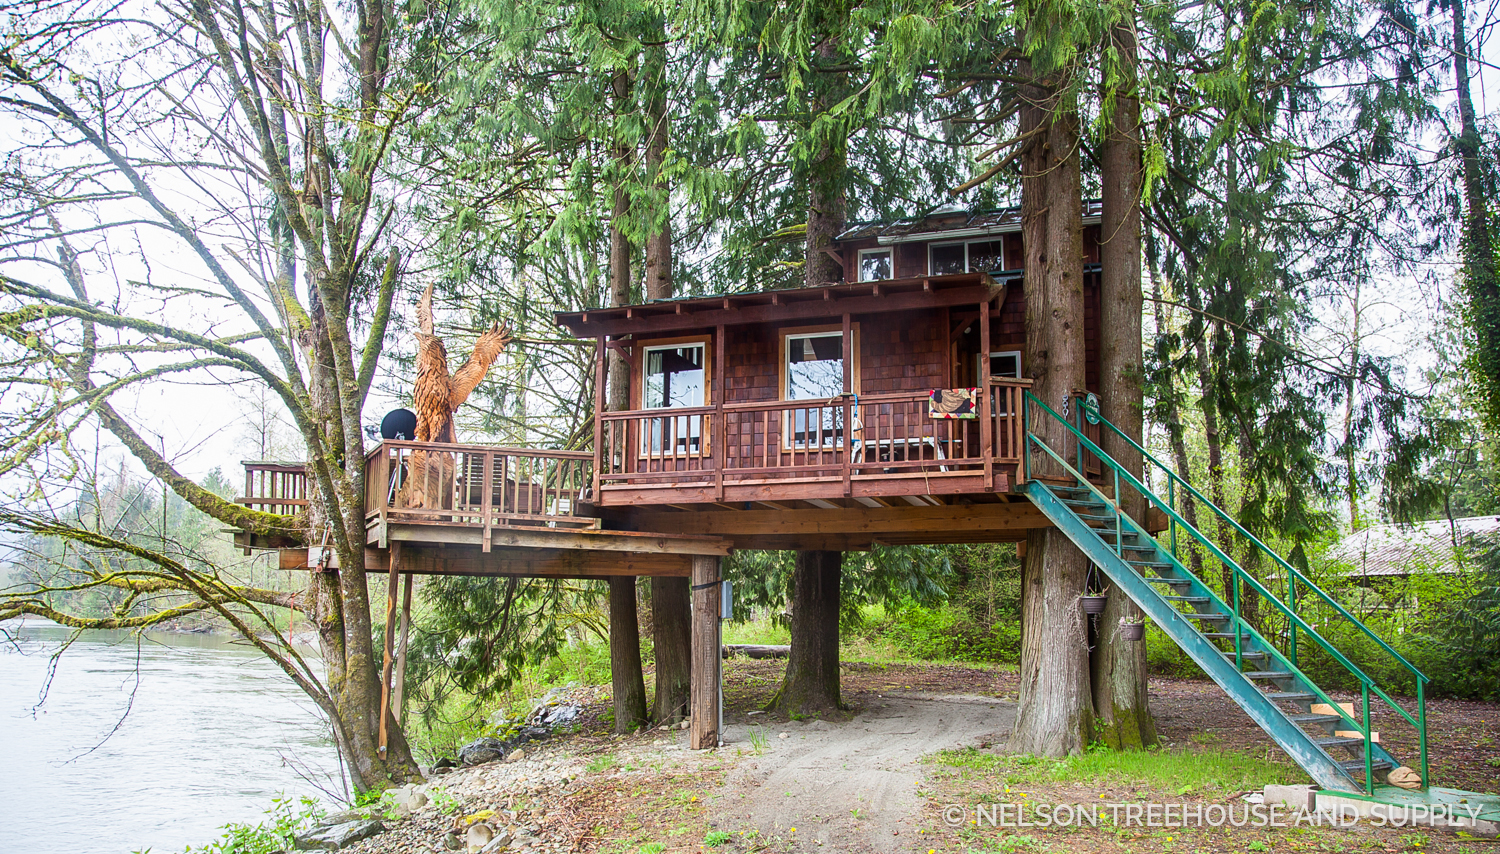 Dylan's dream treehouse would be located near a river for prime fishing access, like this treehouse (owned by  Bruce of Wild edge Woods ) in oso, WA.